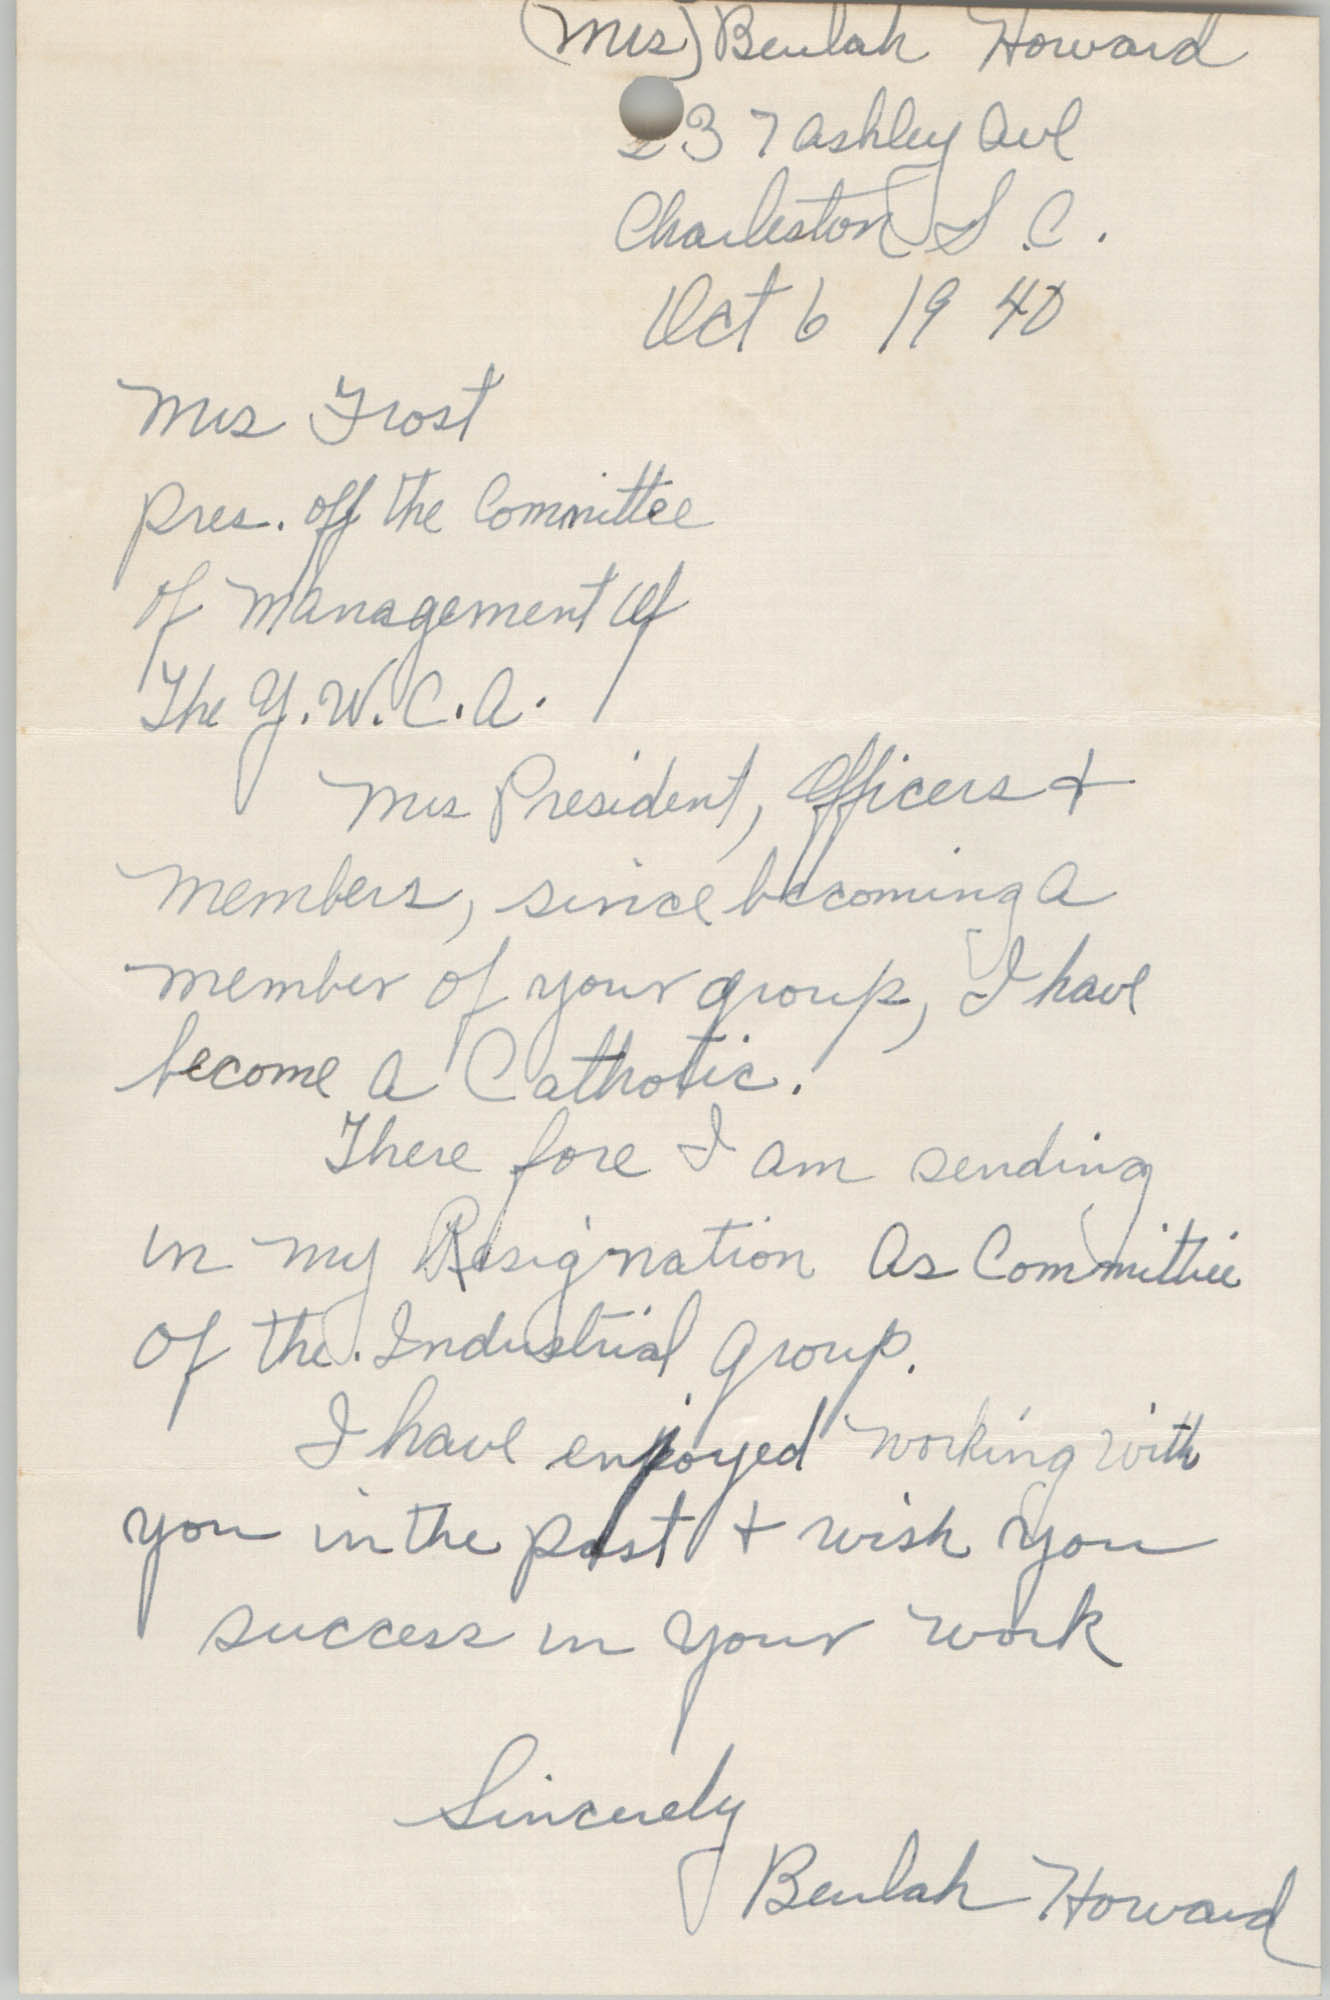 Letter from Beulah Howard to Committee of Management, Coming Street Y.W.C.A., October 6, 1940